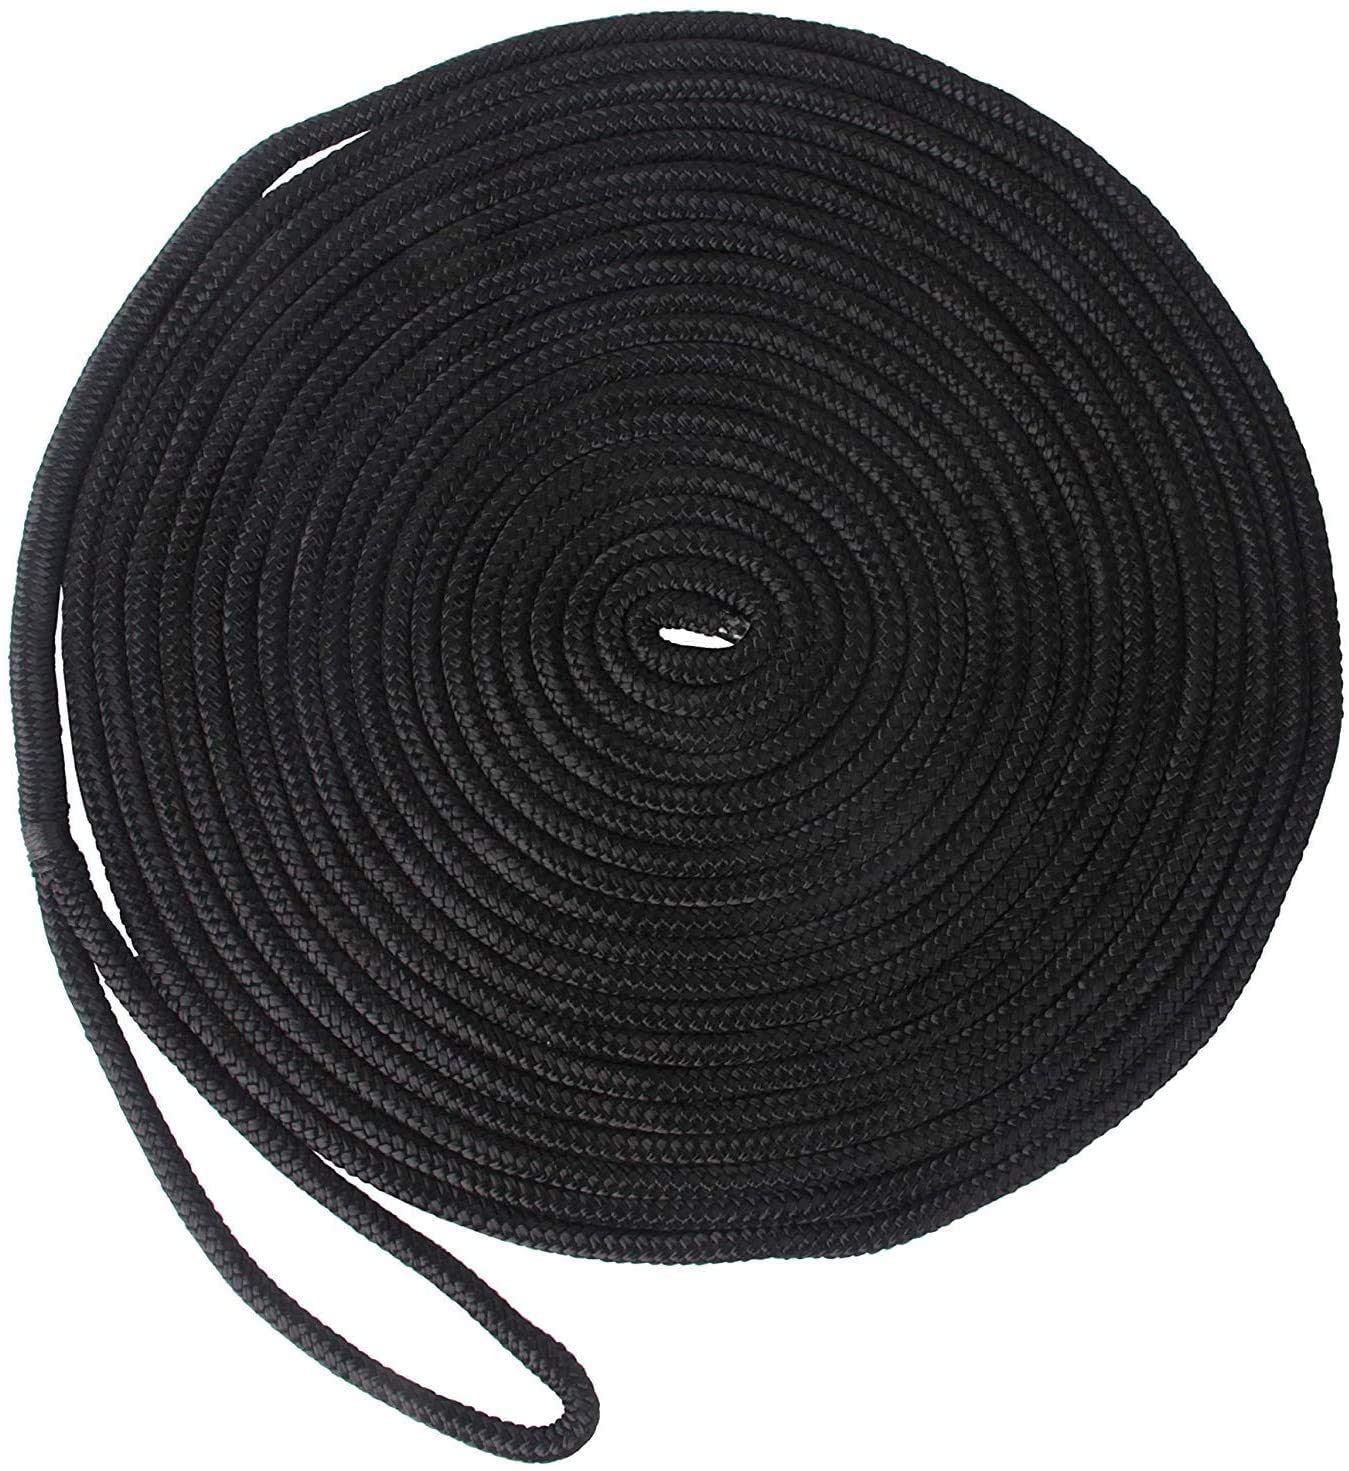 SILANON Double Braided Nylon Docking Lines- Premium Mooring Lines for Boats 3/8 inch 1/2 inch 5/8 inch Marine Anchor Rope with 12 inch Eyelet L: 16.5 FT 25 FT 50 FT